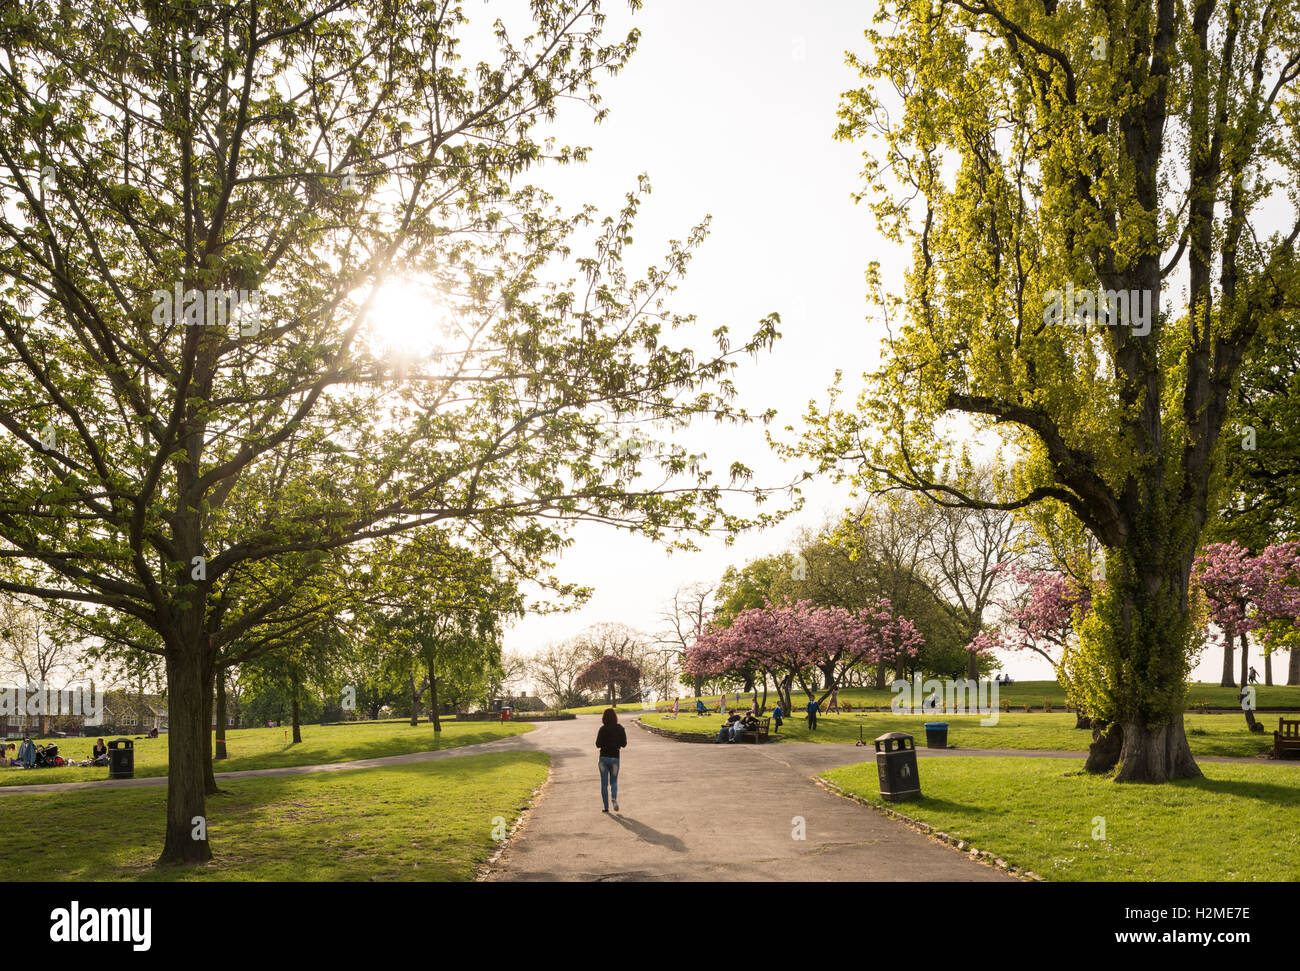 Roundwood Park, Harlesden, London, UK - Stock Image